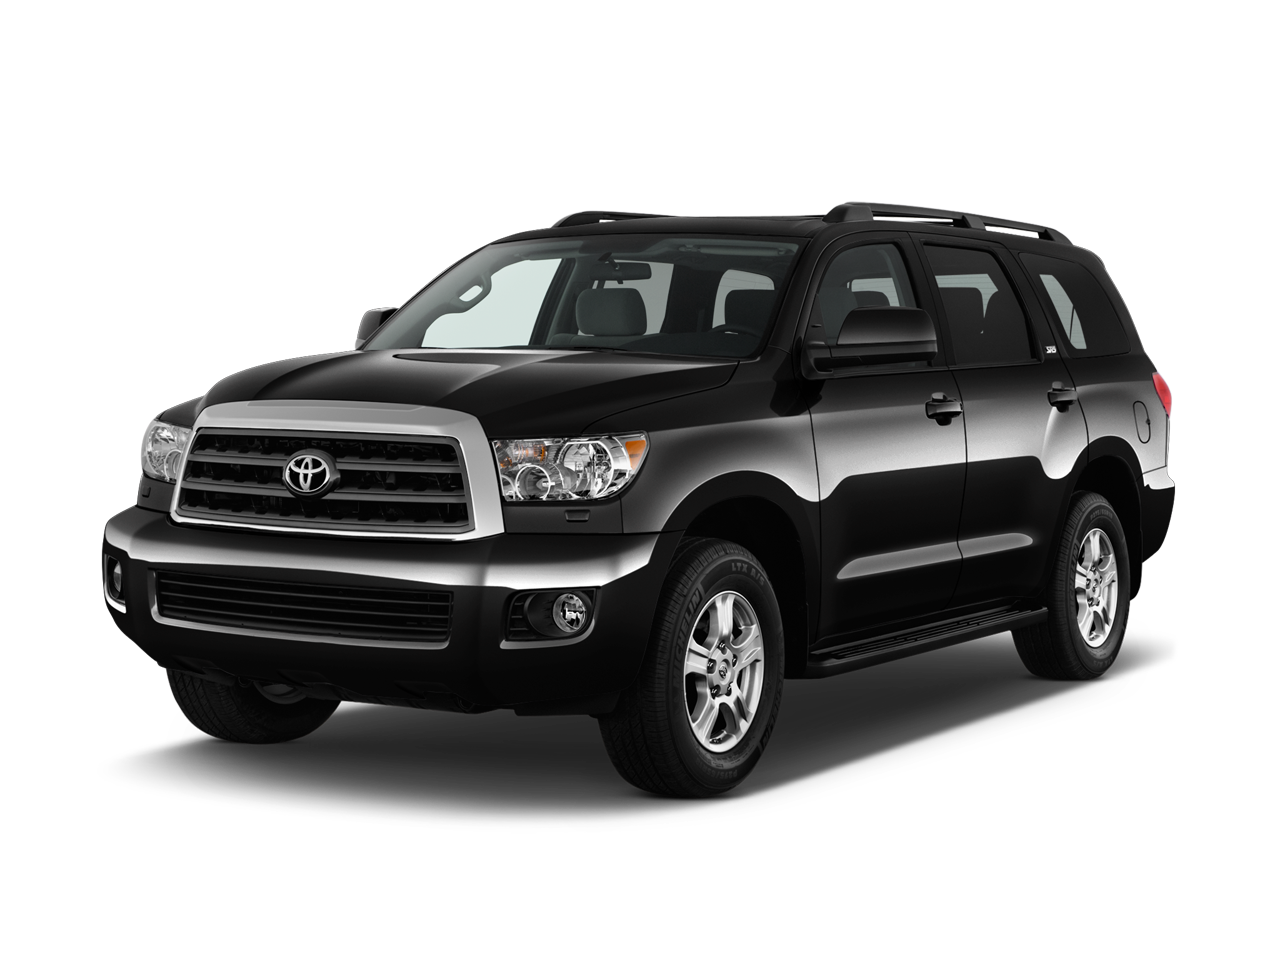 new 2017 toyota sequoia sr5 near herculaneum mo twin city toyota. Black Bedroom Furniture Sets. Home Design Ideas